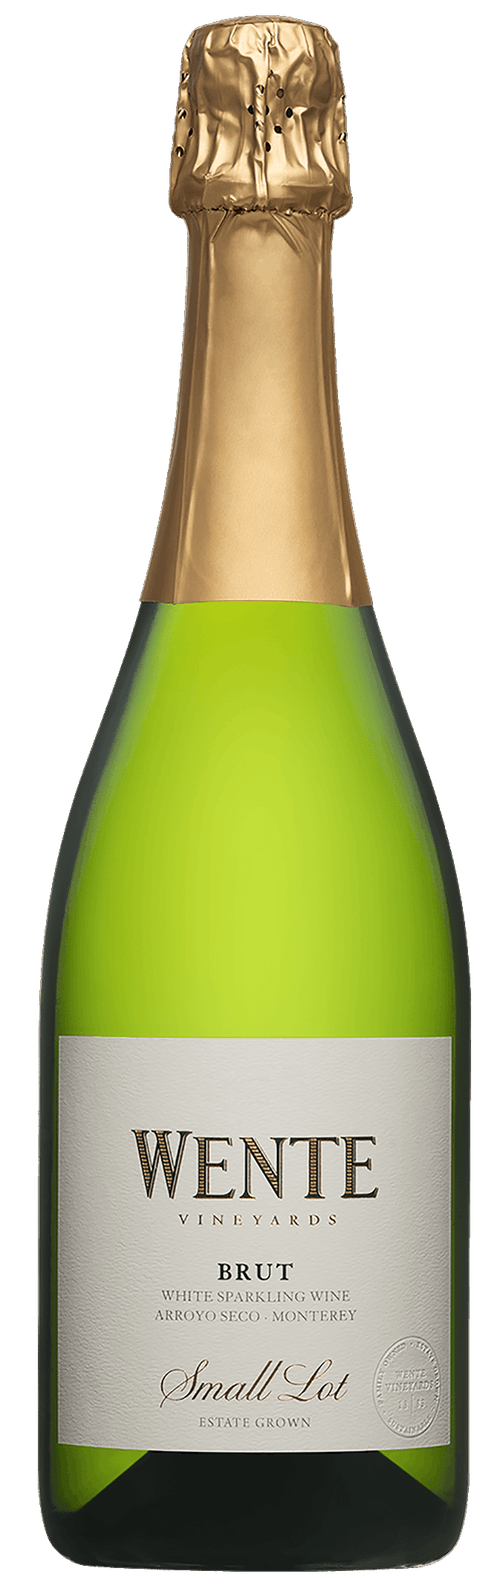 https___wentevineyards.com_uploads_images_product_WV-SL-Brut-NV-Bottle-Shot.png